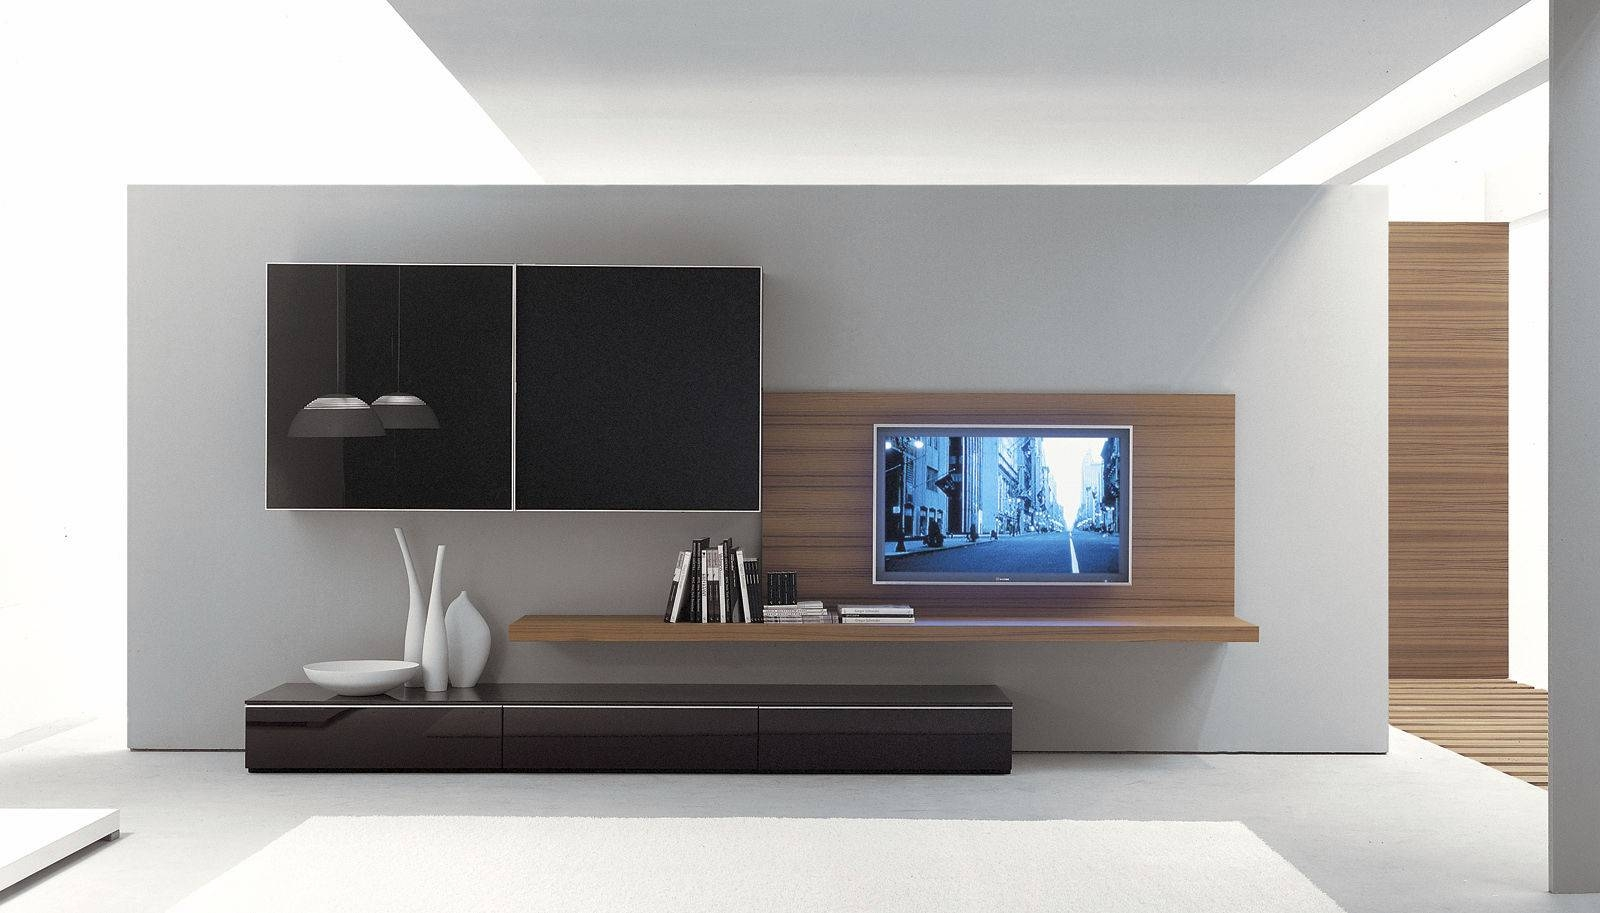 Surprising Modern Contemporary Tv Wall Units 34 For Your Room within Contemporary Tv Wall Units (Image 14 of 15)